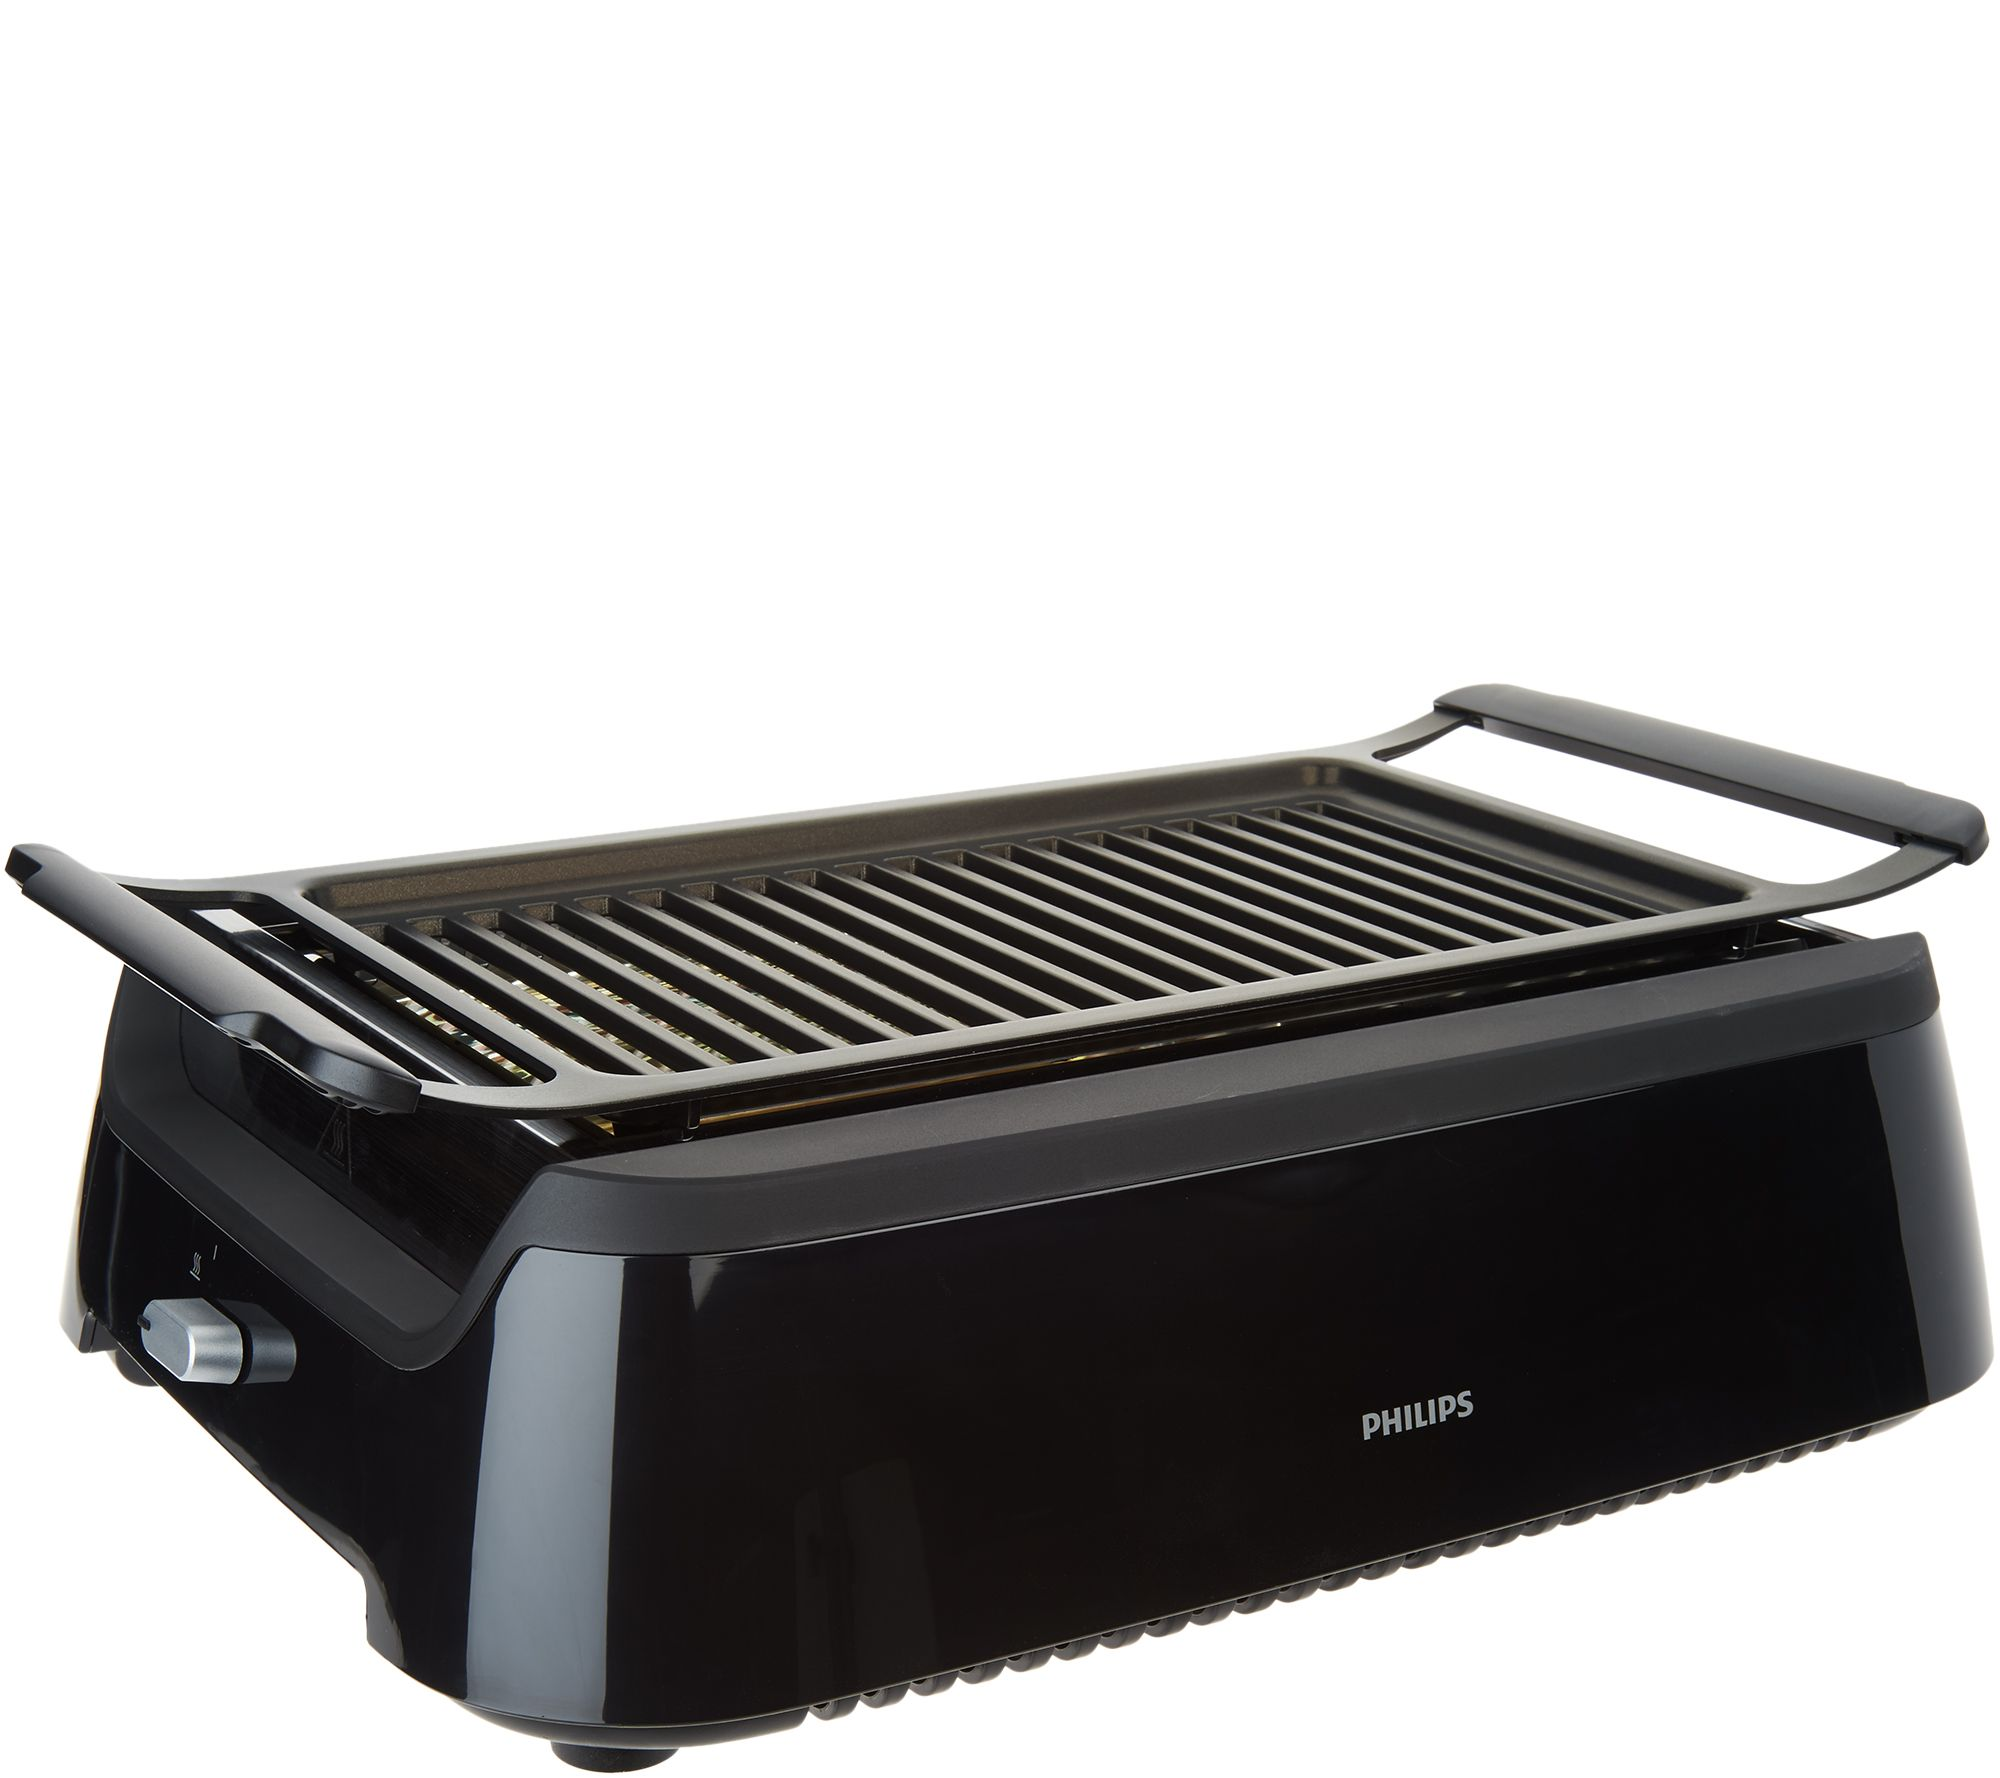 BRAND Philips Smokeless Indoor BBQ Grill Infrared Back to School sale